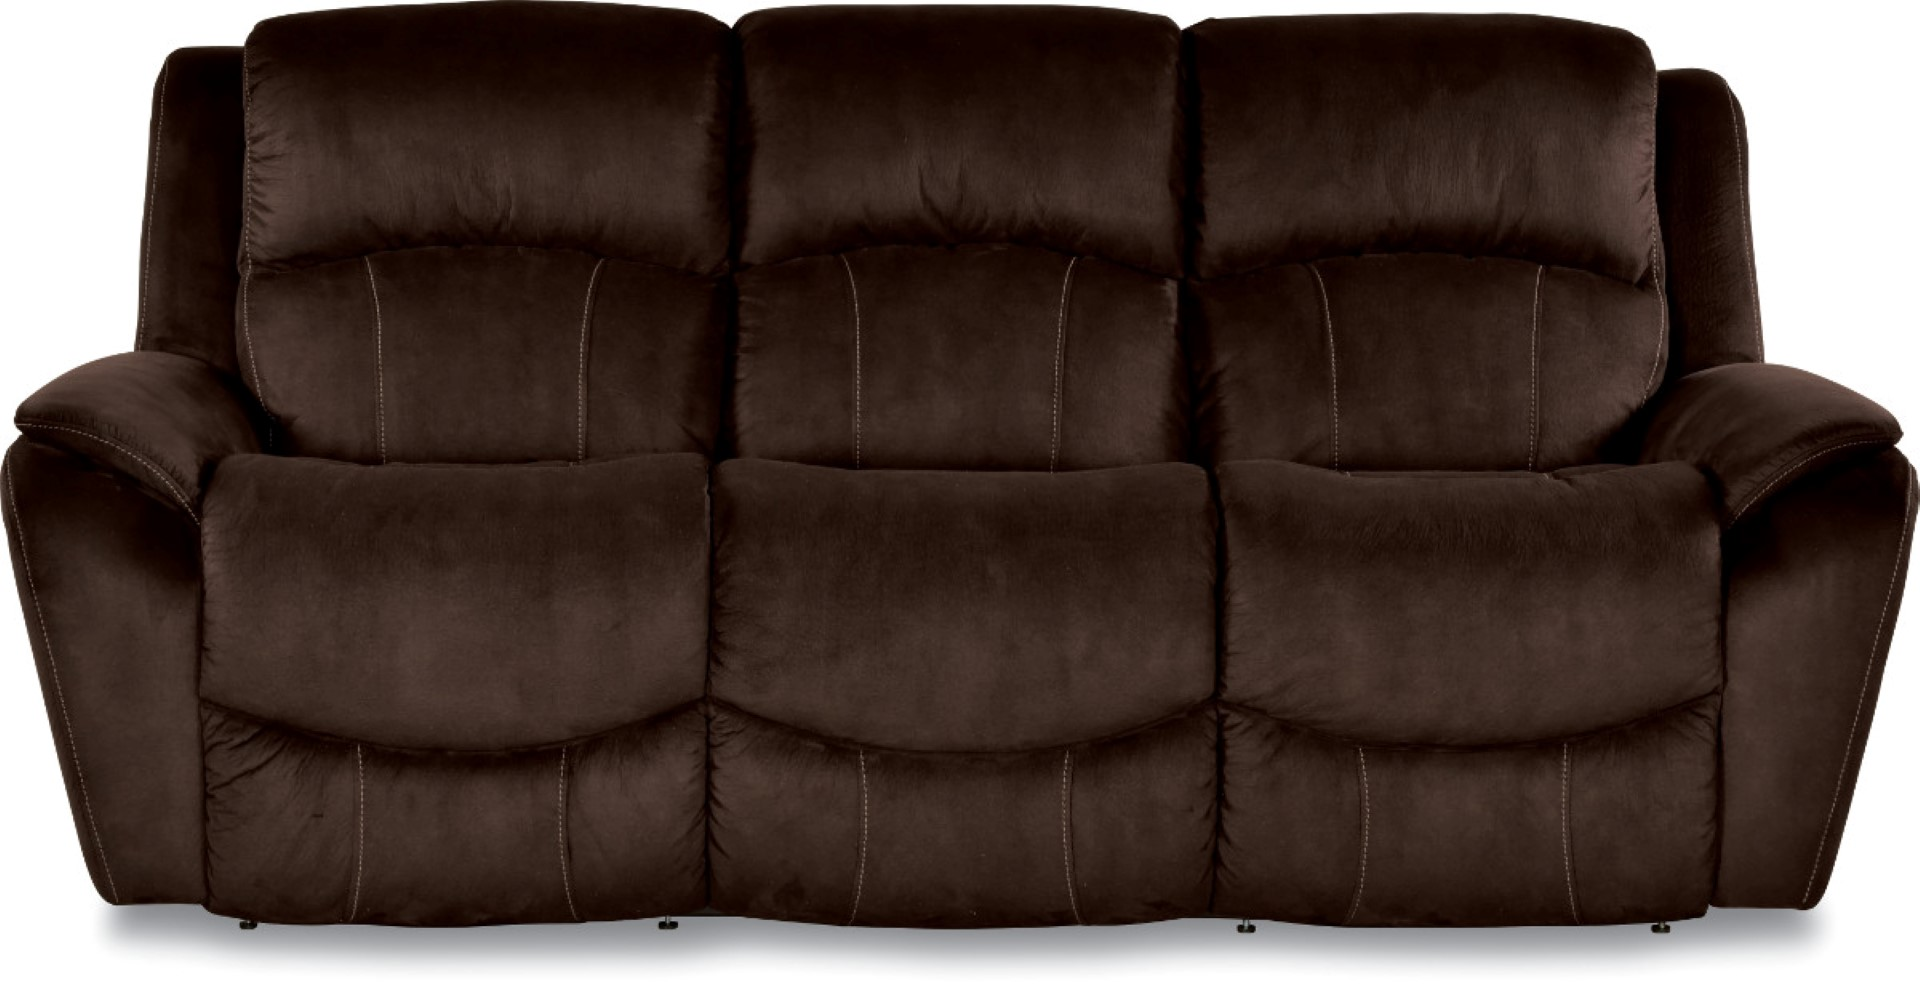 & La Z Boy Barrett Reclining Sofa - Town u0026 Country Furniture islam-shia.org